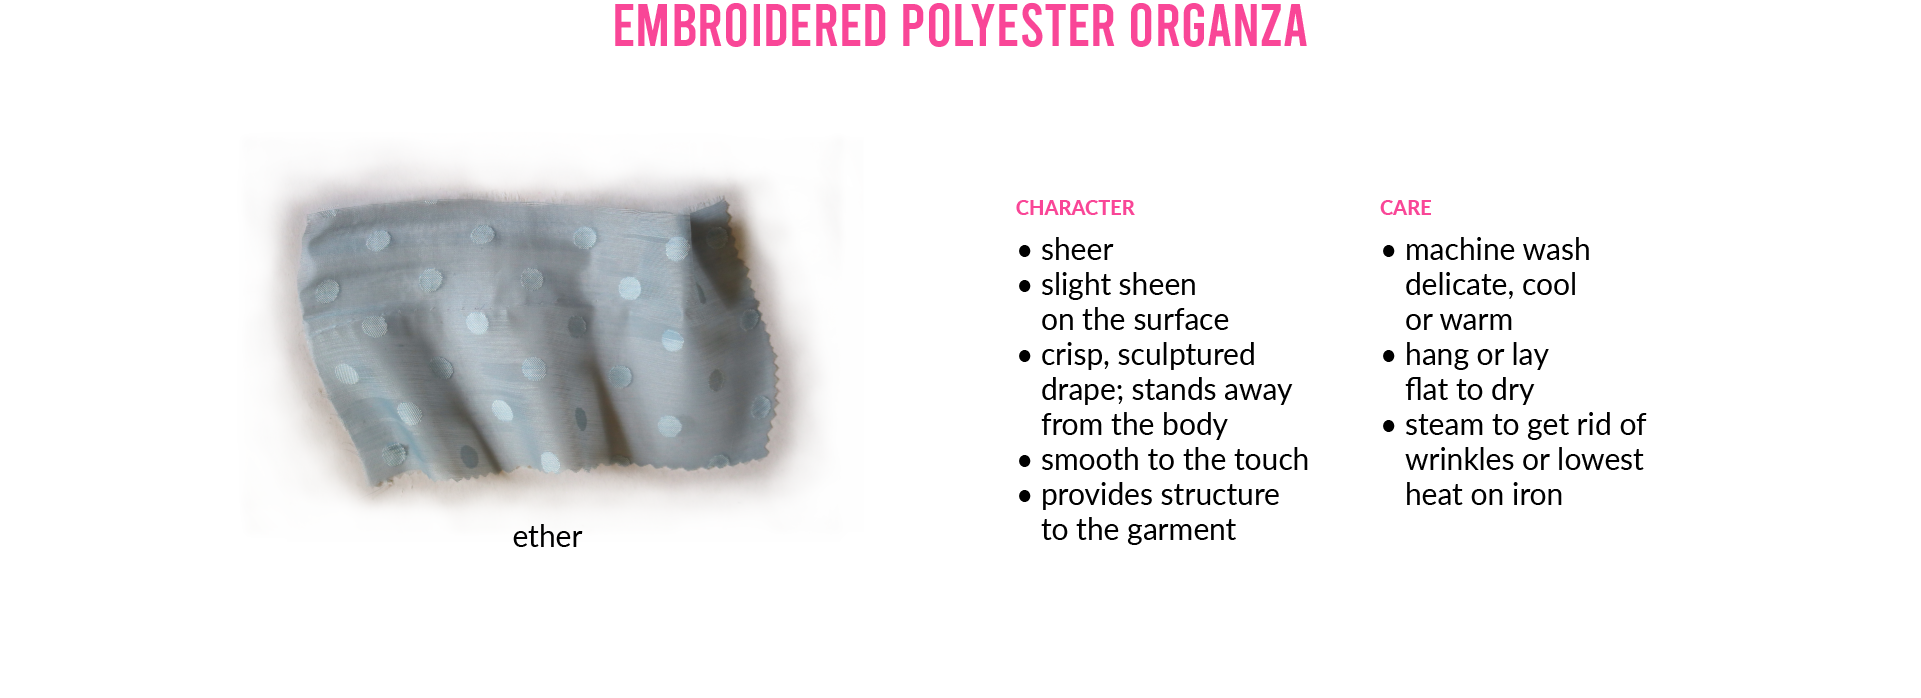 Embroidered Polyester Organza. Photo of fabric swatch: ether. CHARACTER • sheer • slight sheen on the surface • crisp, sculptured drape; stands away from the body • smooth to the touch • provides structure to the garment CARE • machine wash delicate, cool or warm • hang or lay flat to dry • steam to get rid of wrinkles or lowest heat on iron